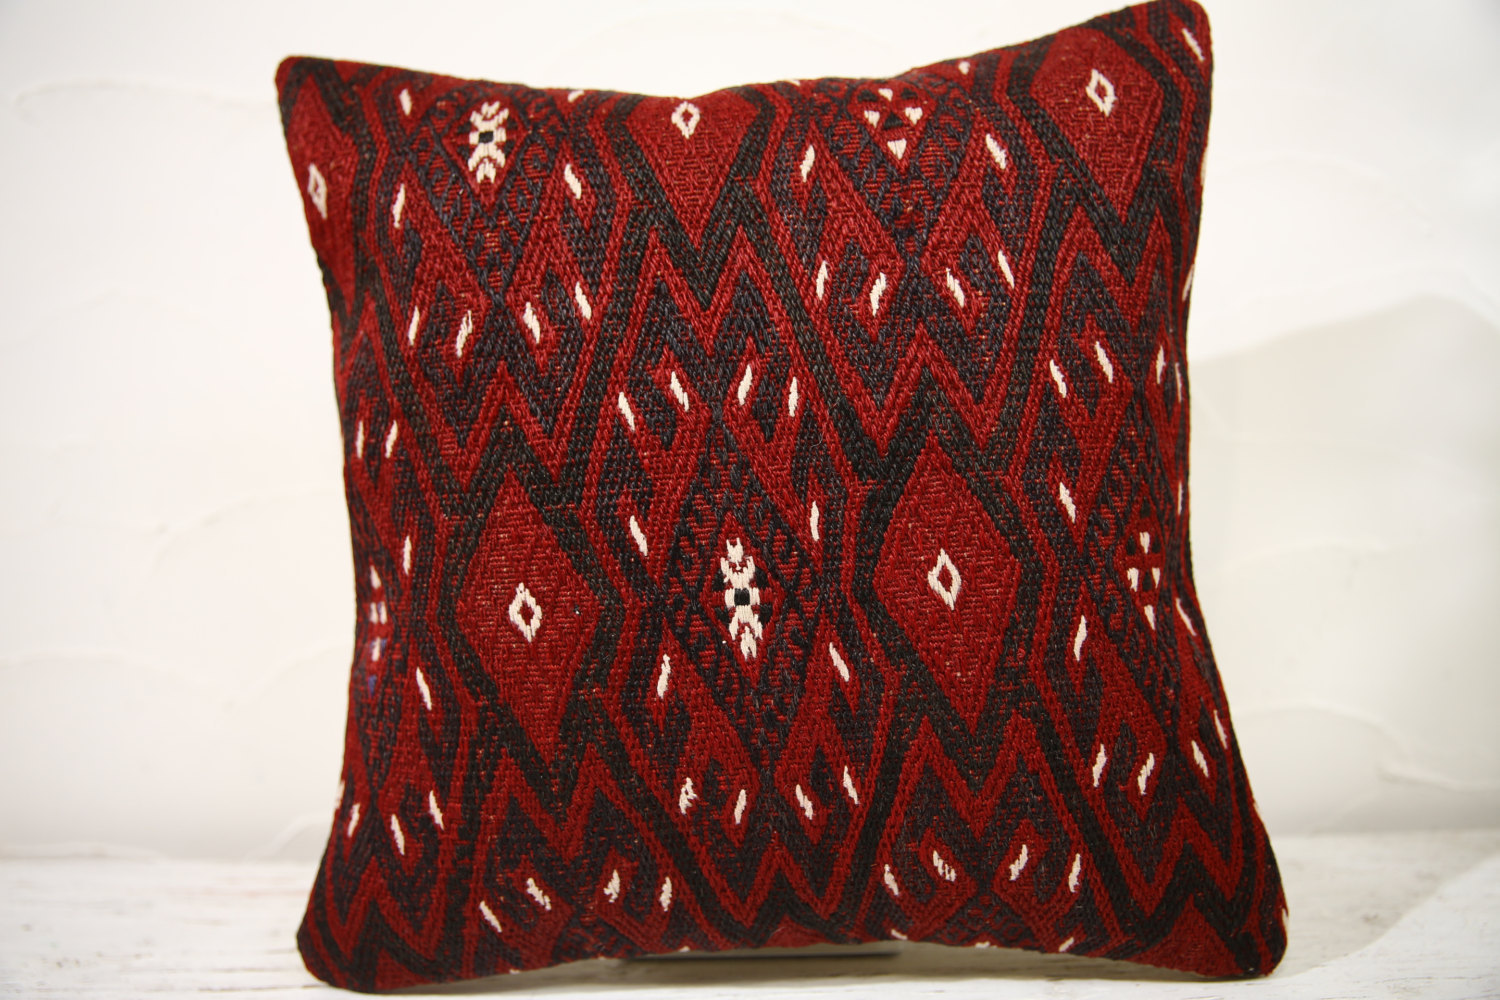 Kilim Pillows | 16x16 | Decorative Pillows | 776 | Accent Pillows,turkish pillow